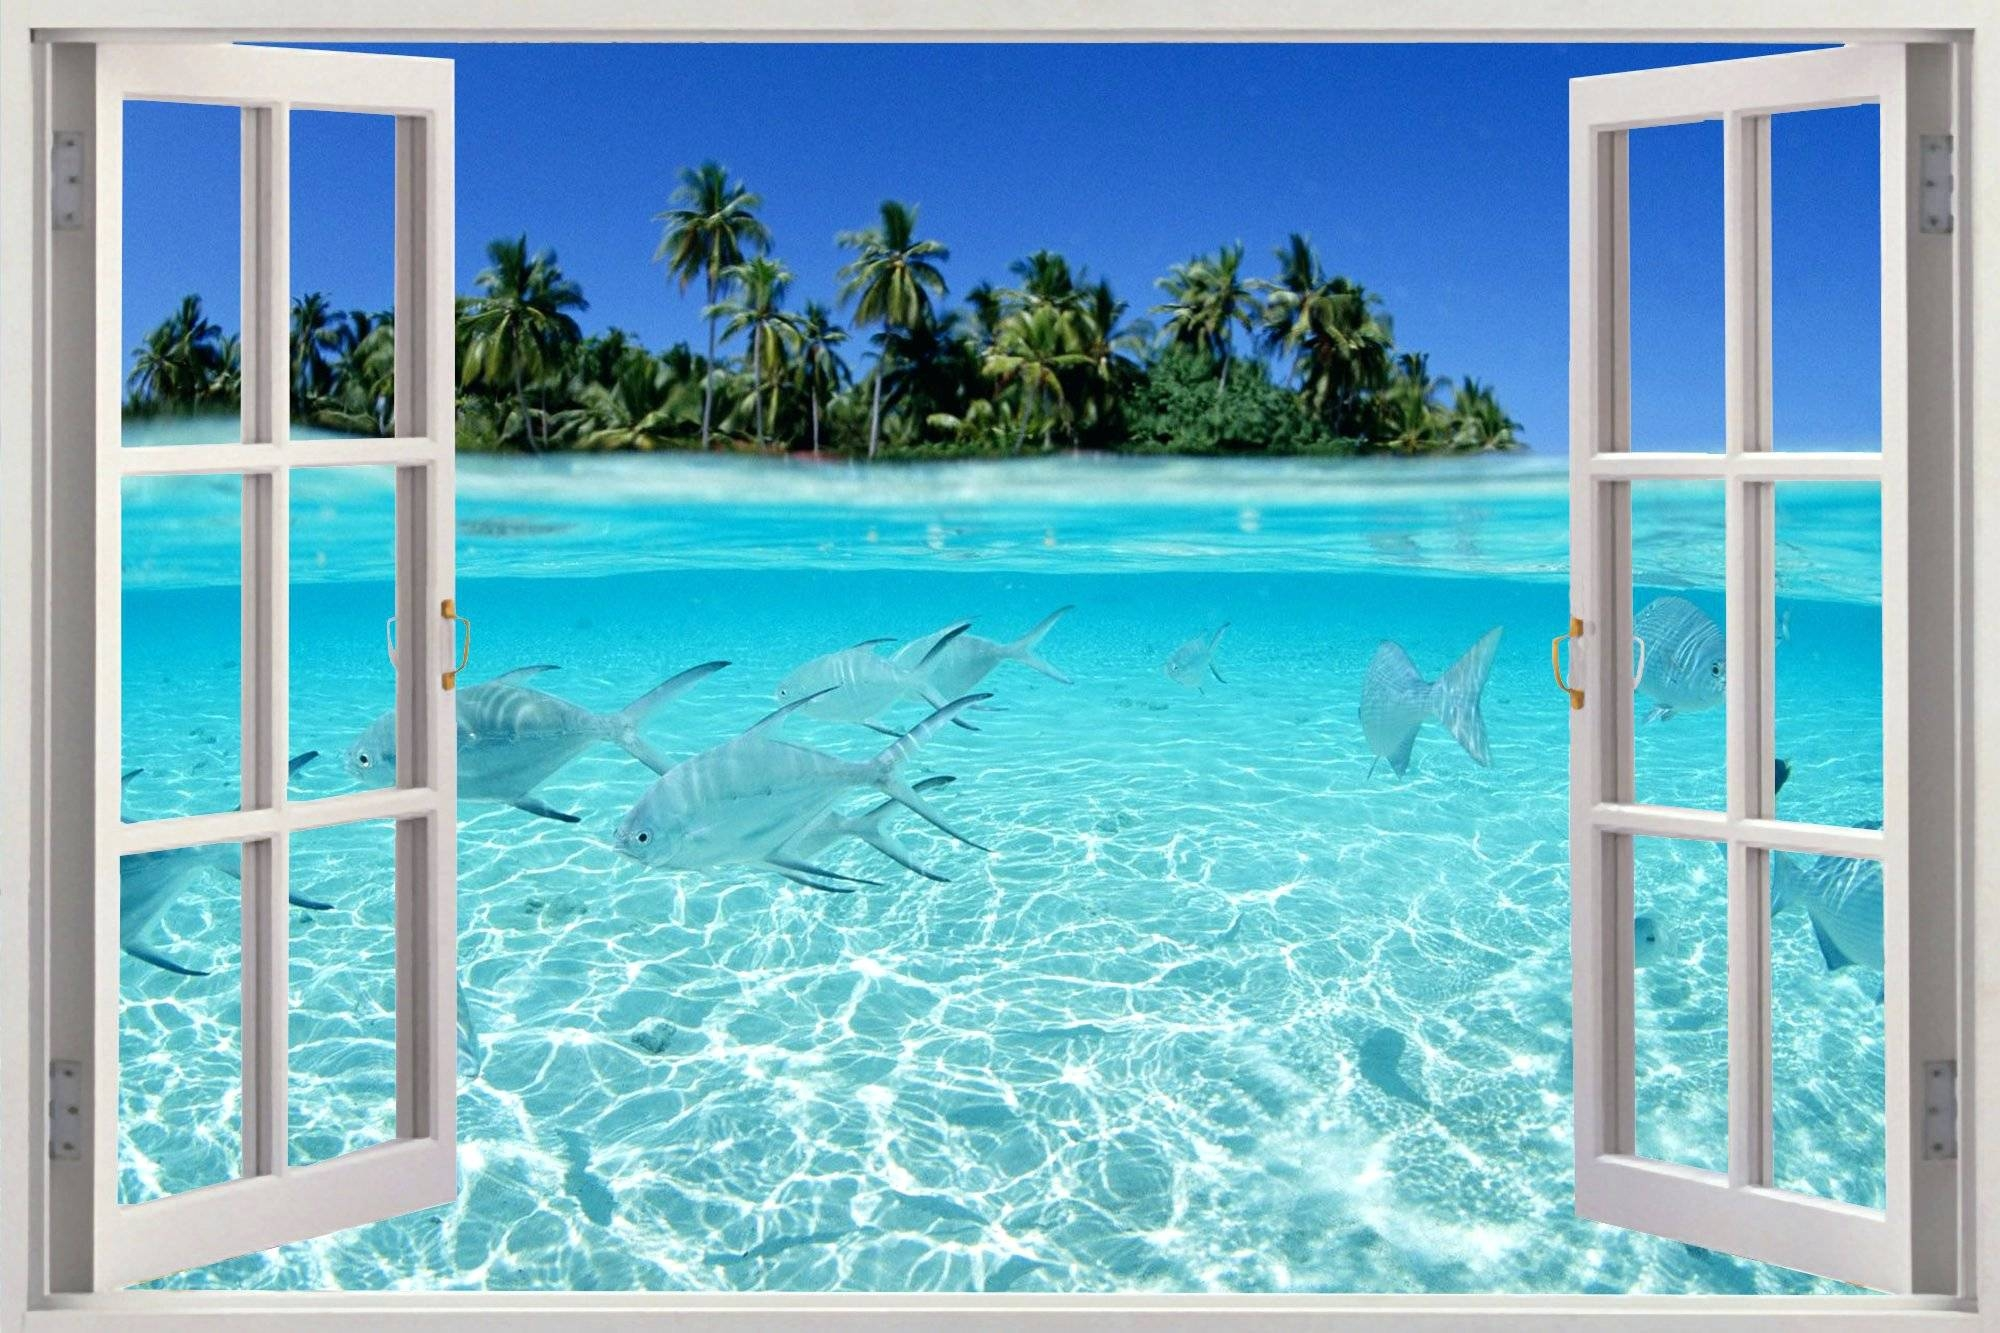 Wall Arts ~ Beach Wall Art Ideas Beach Wall Art Stickers Image Intended For Most Recently Released Beach Metal Wall Art (View 16 of 20)